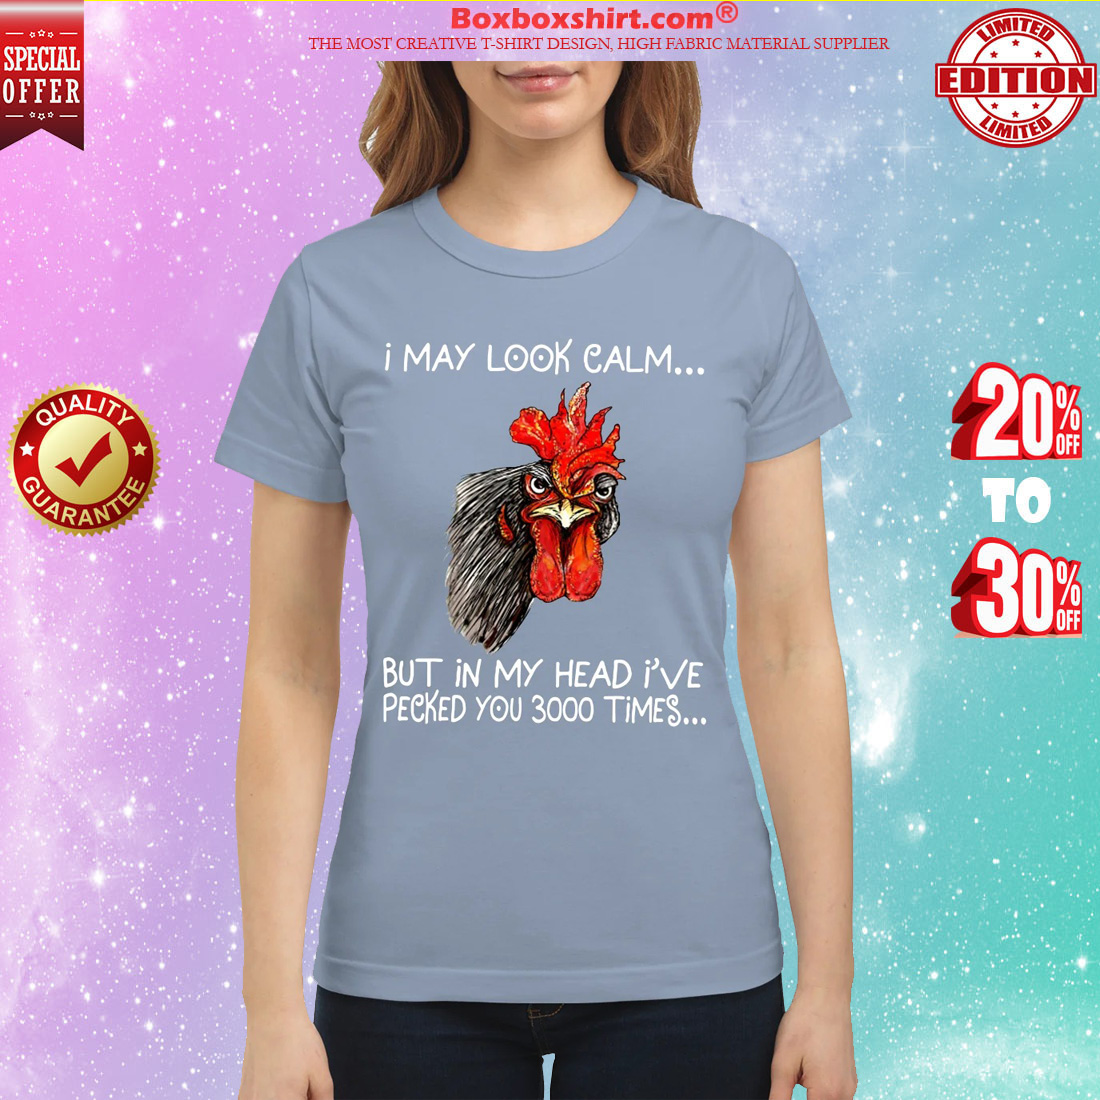 Chicken I may look calm but in my head I've pecked you 3000 times classic shirt